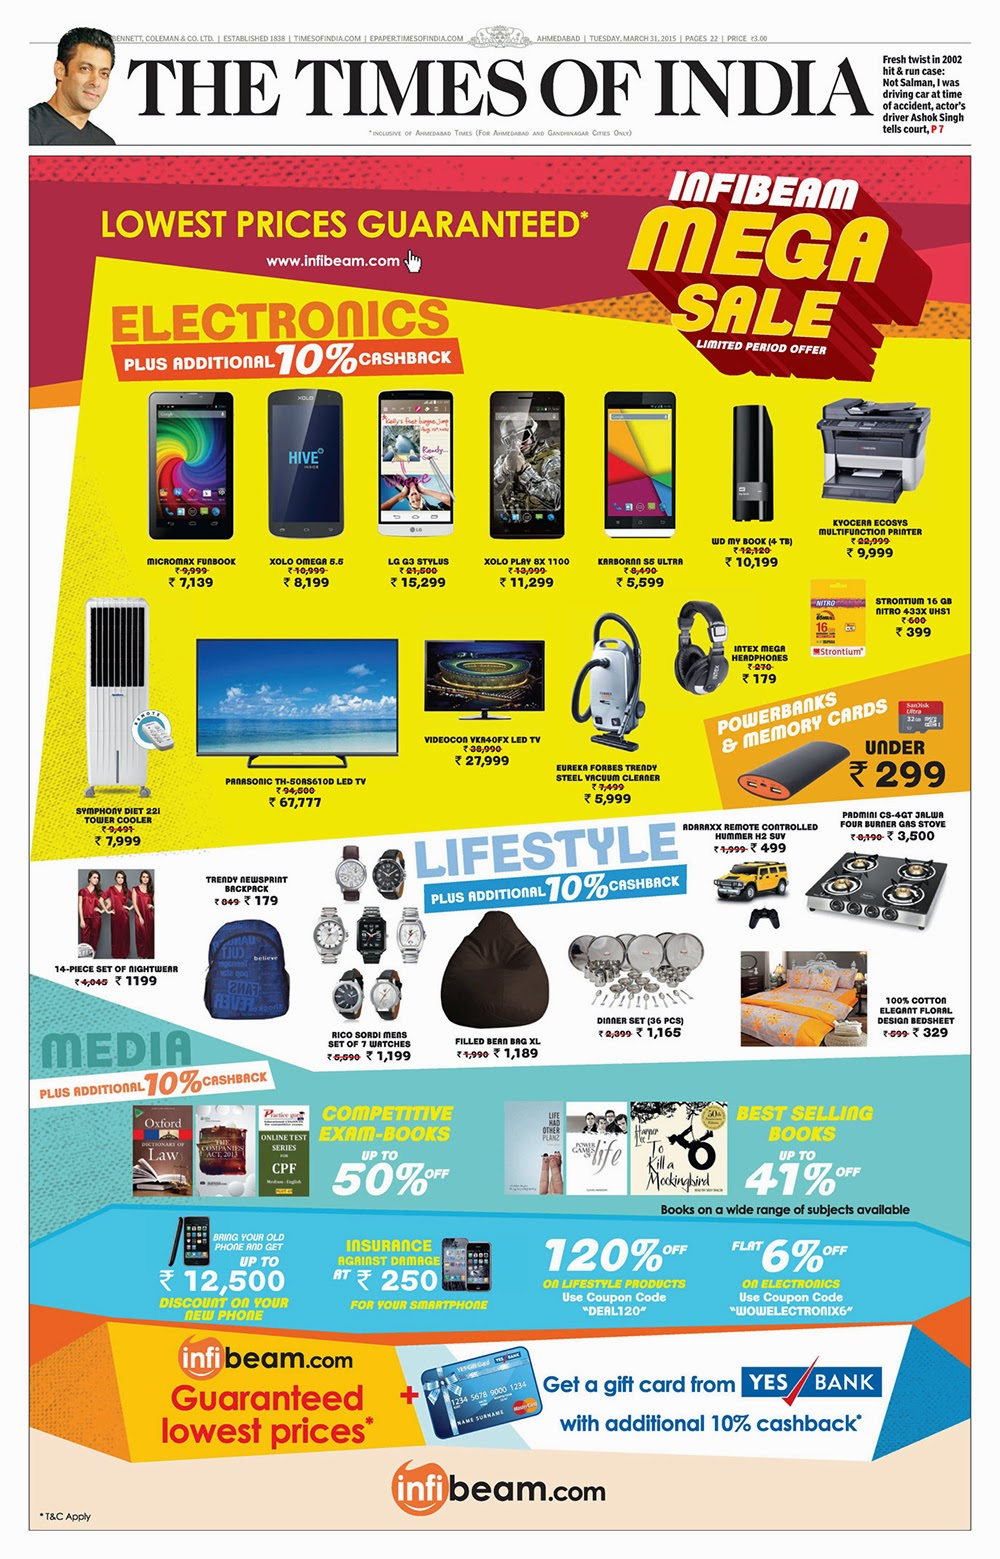 Infibeam Mega Sale Advertisement on Times of India Front Page